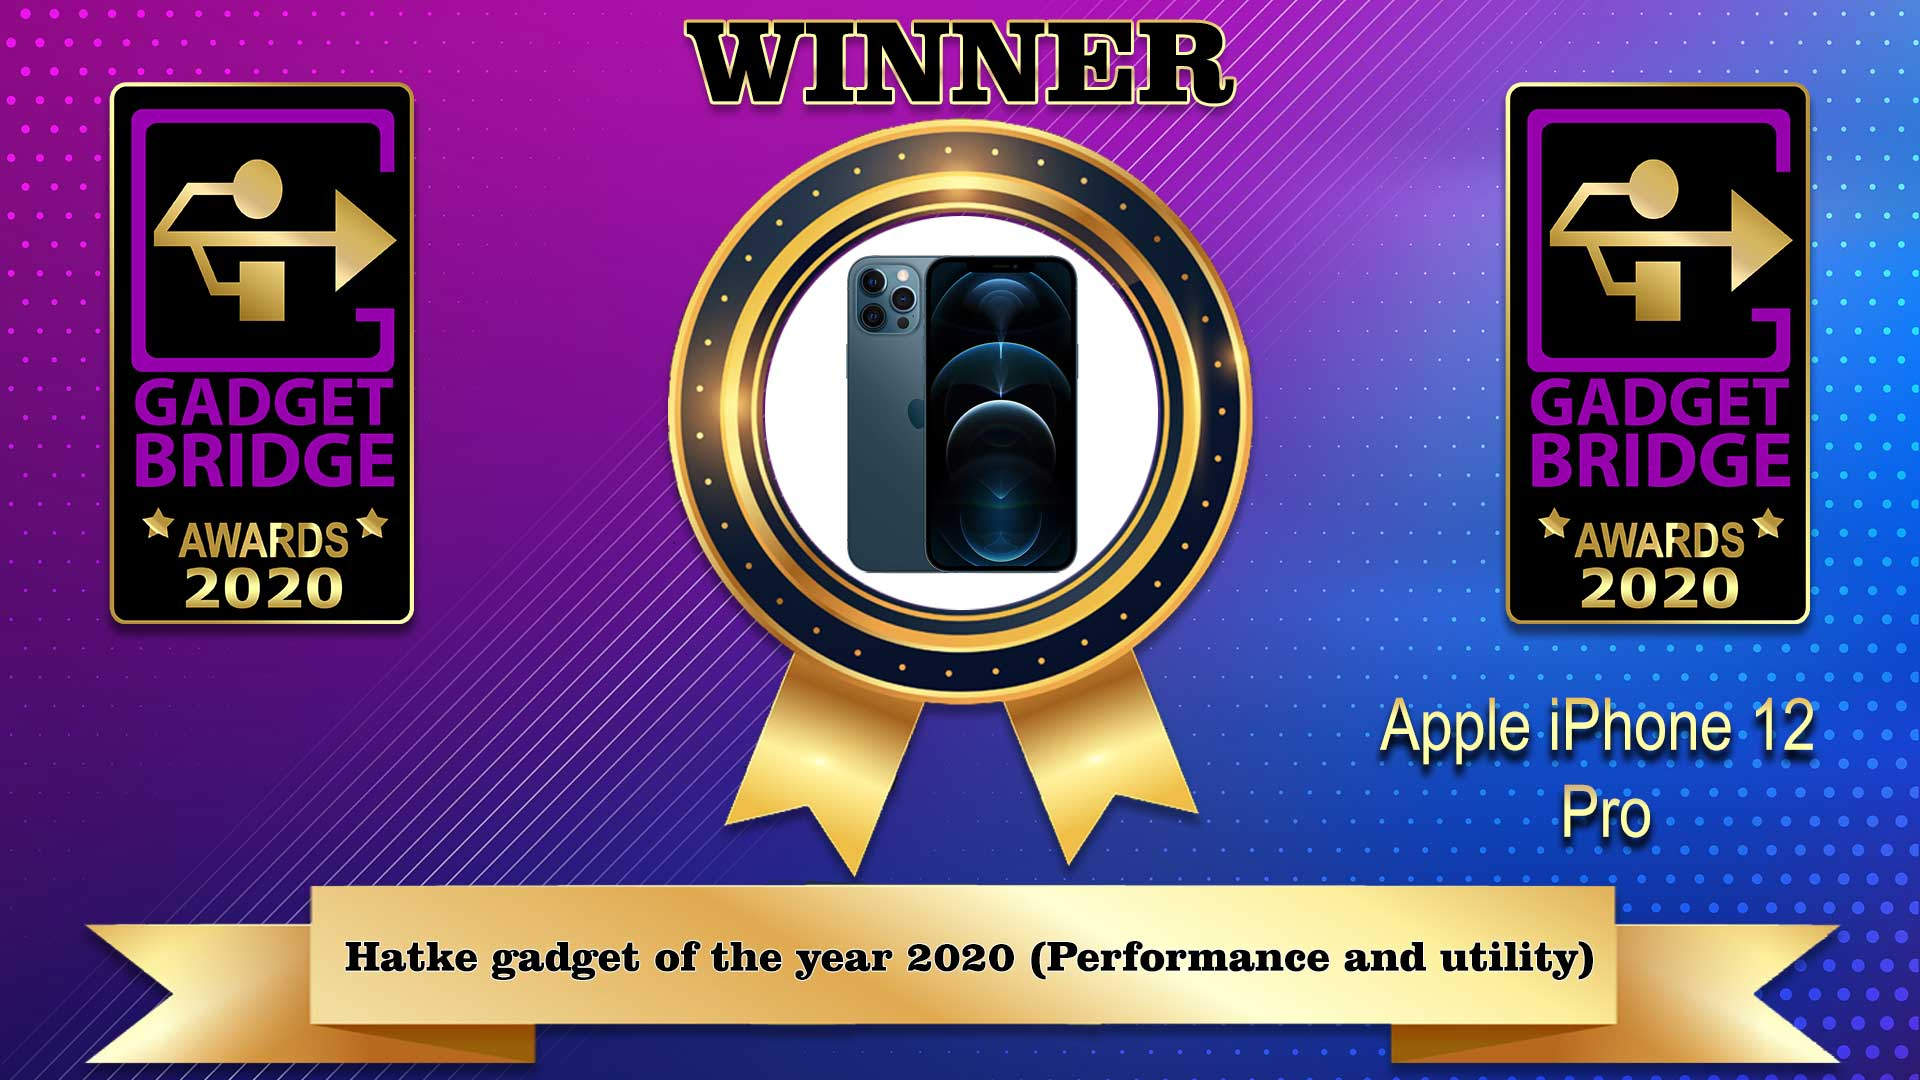 Hatke-gadget-of-the-year-(Performance-and-utility)-2020